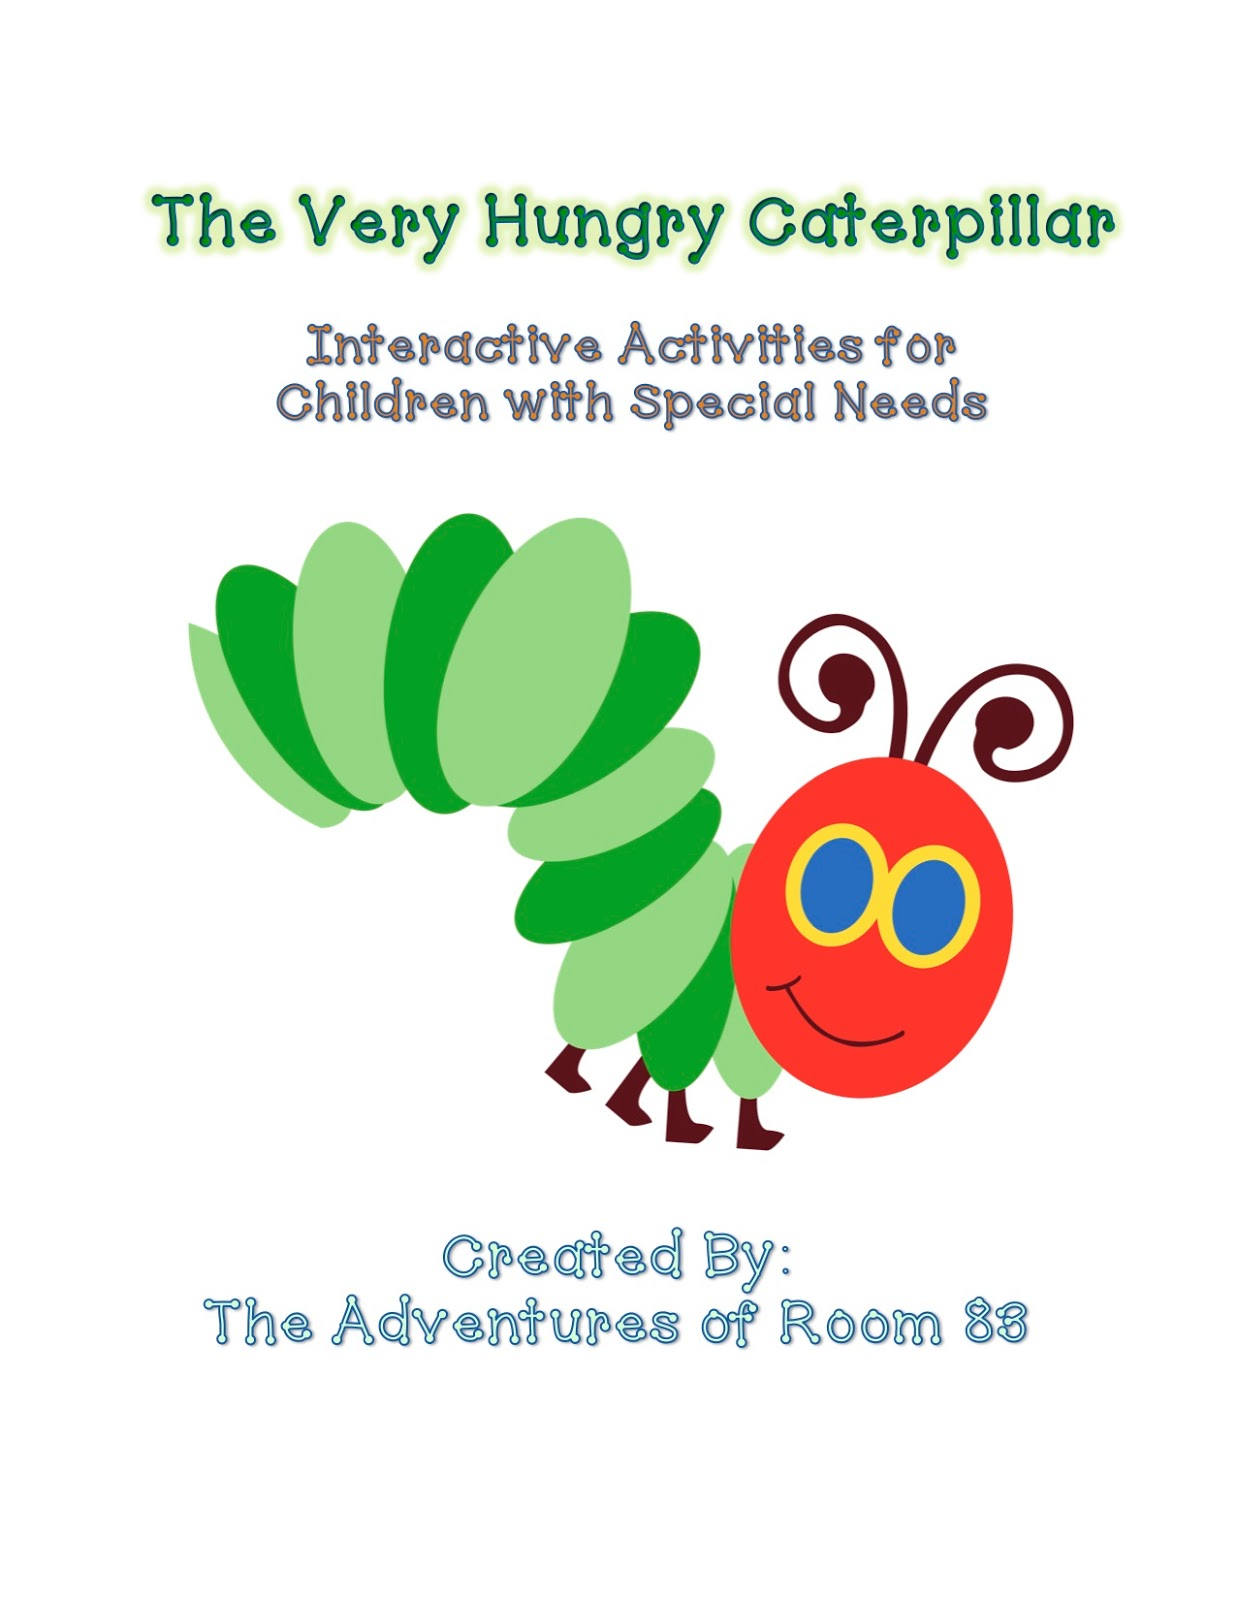 The Very Hungry Caterpillar Activities Autism Adventures